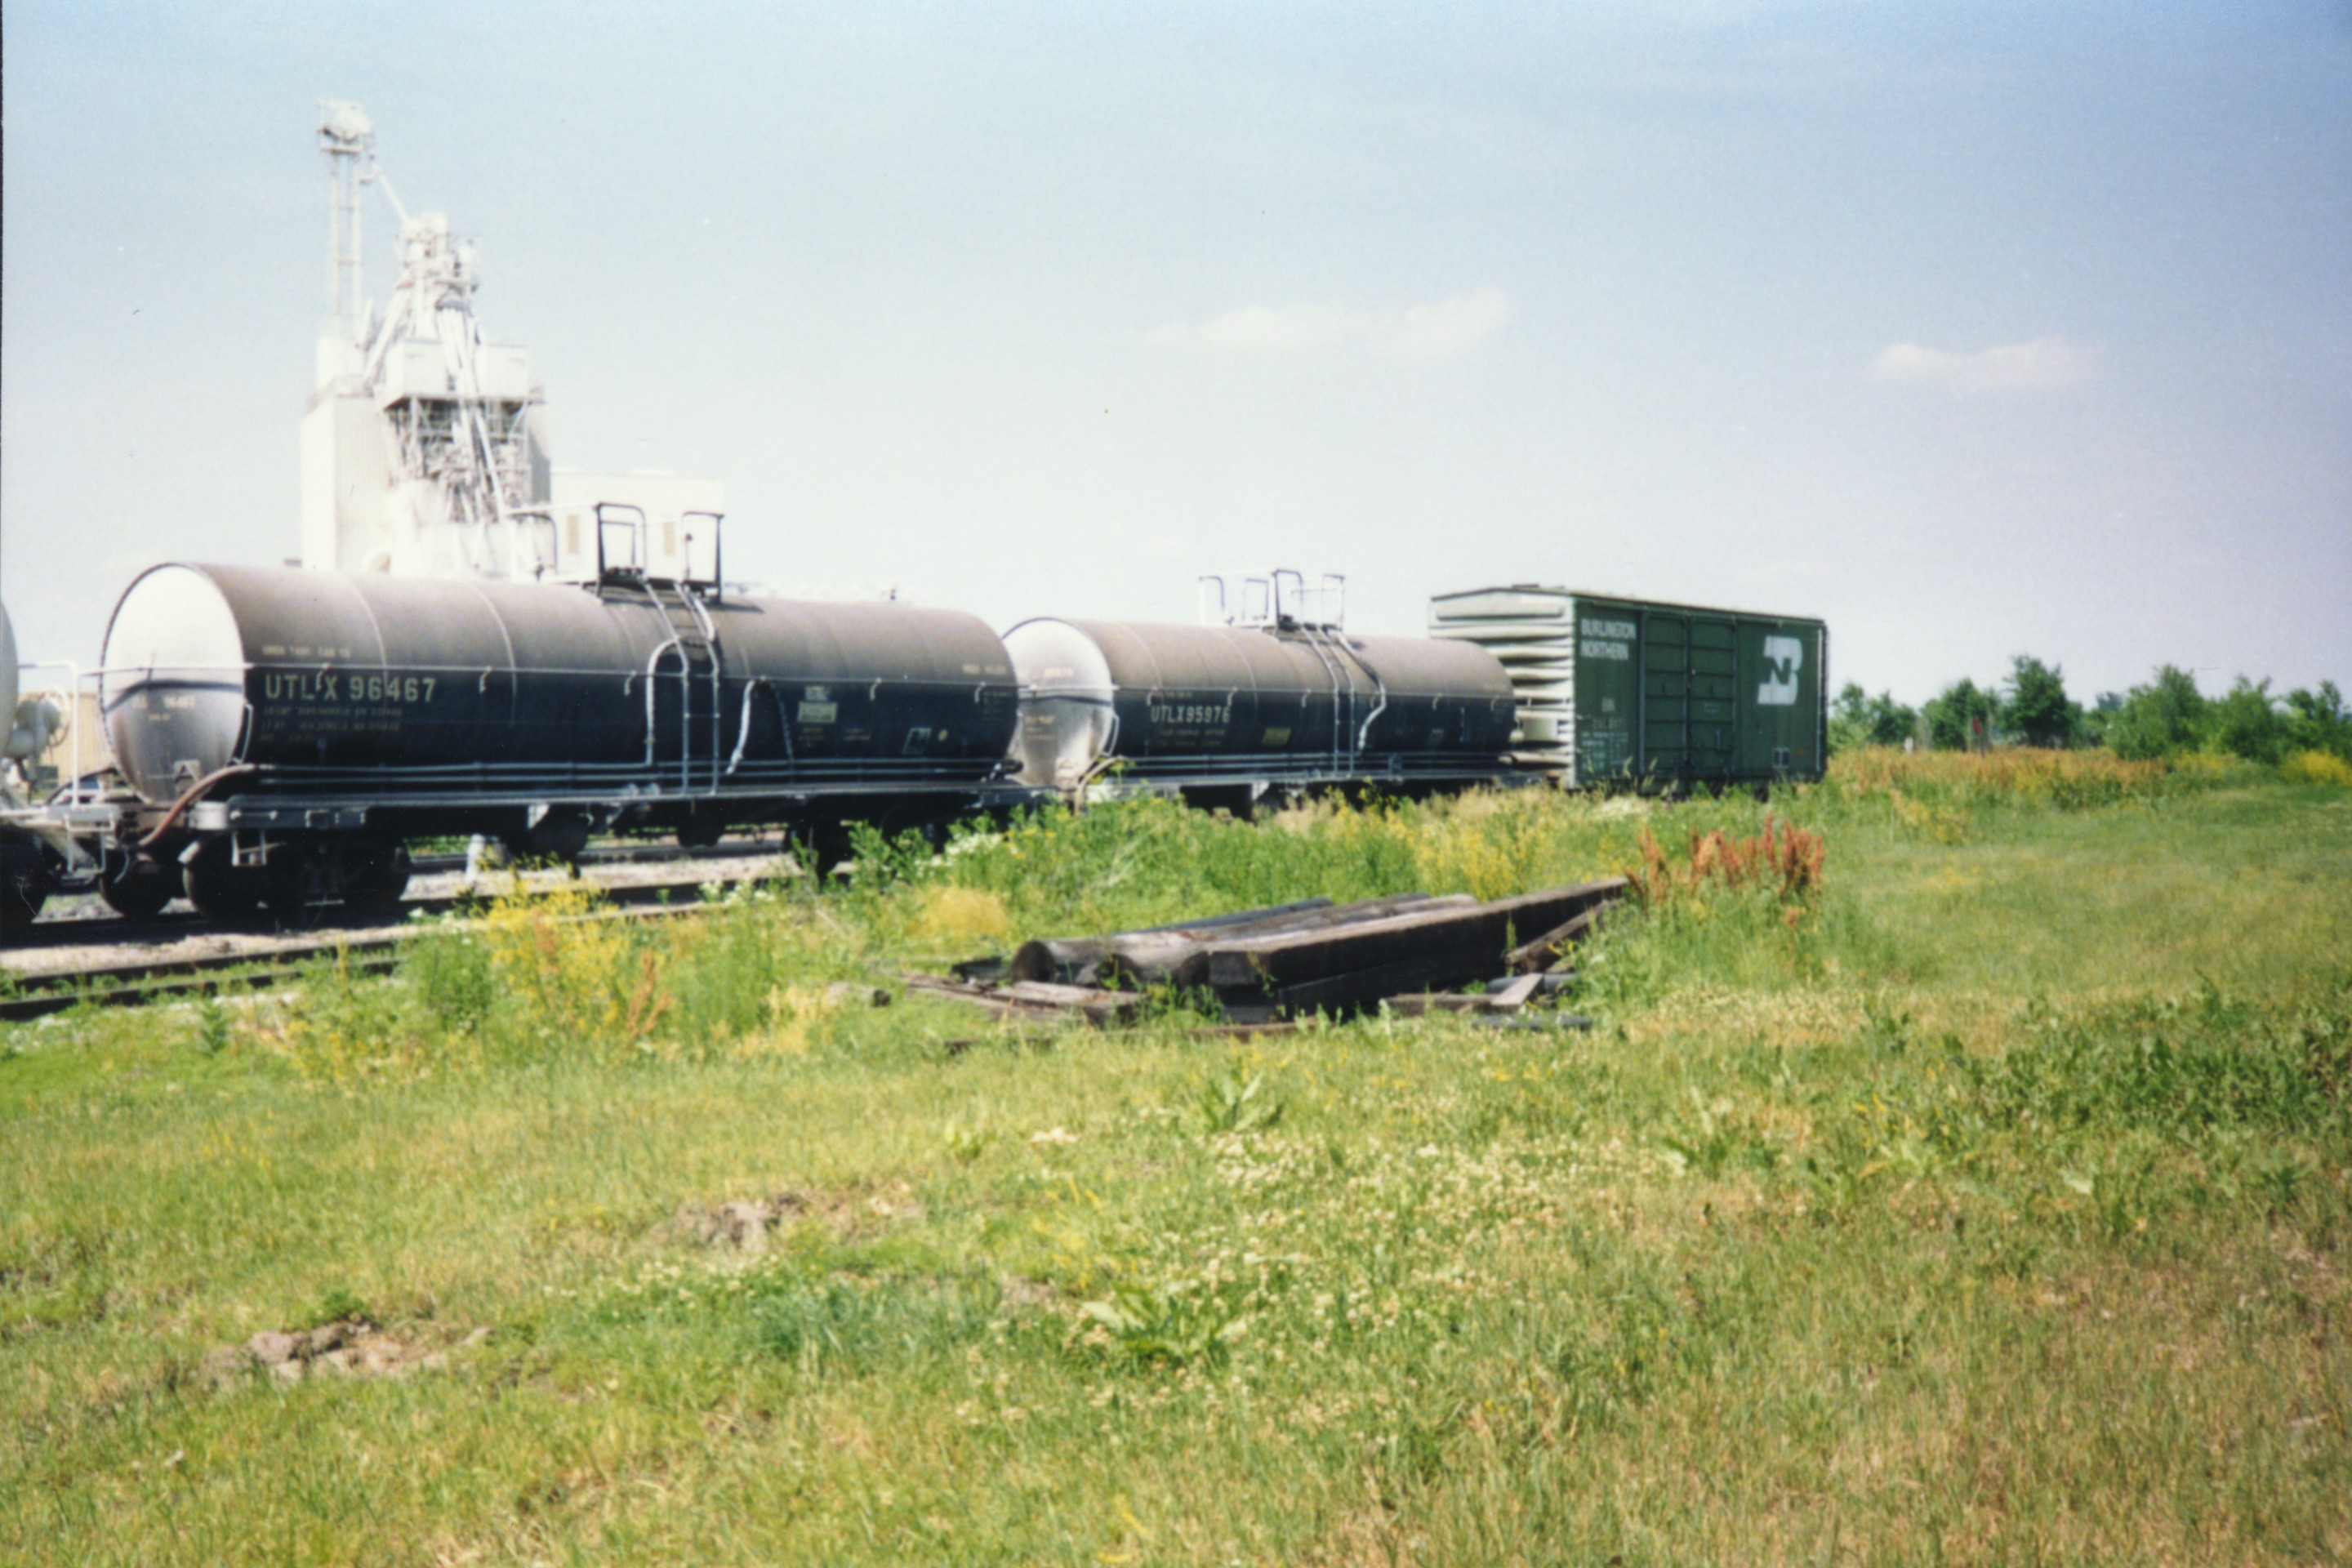 UTLX-95976-altoona ia-[jun-1992]-000